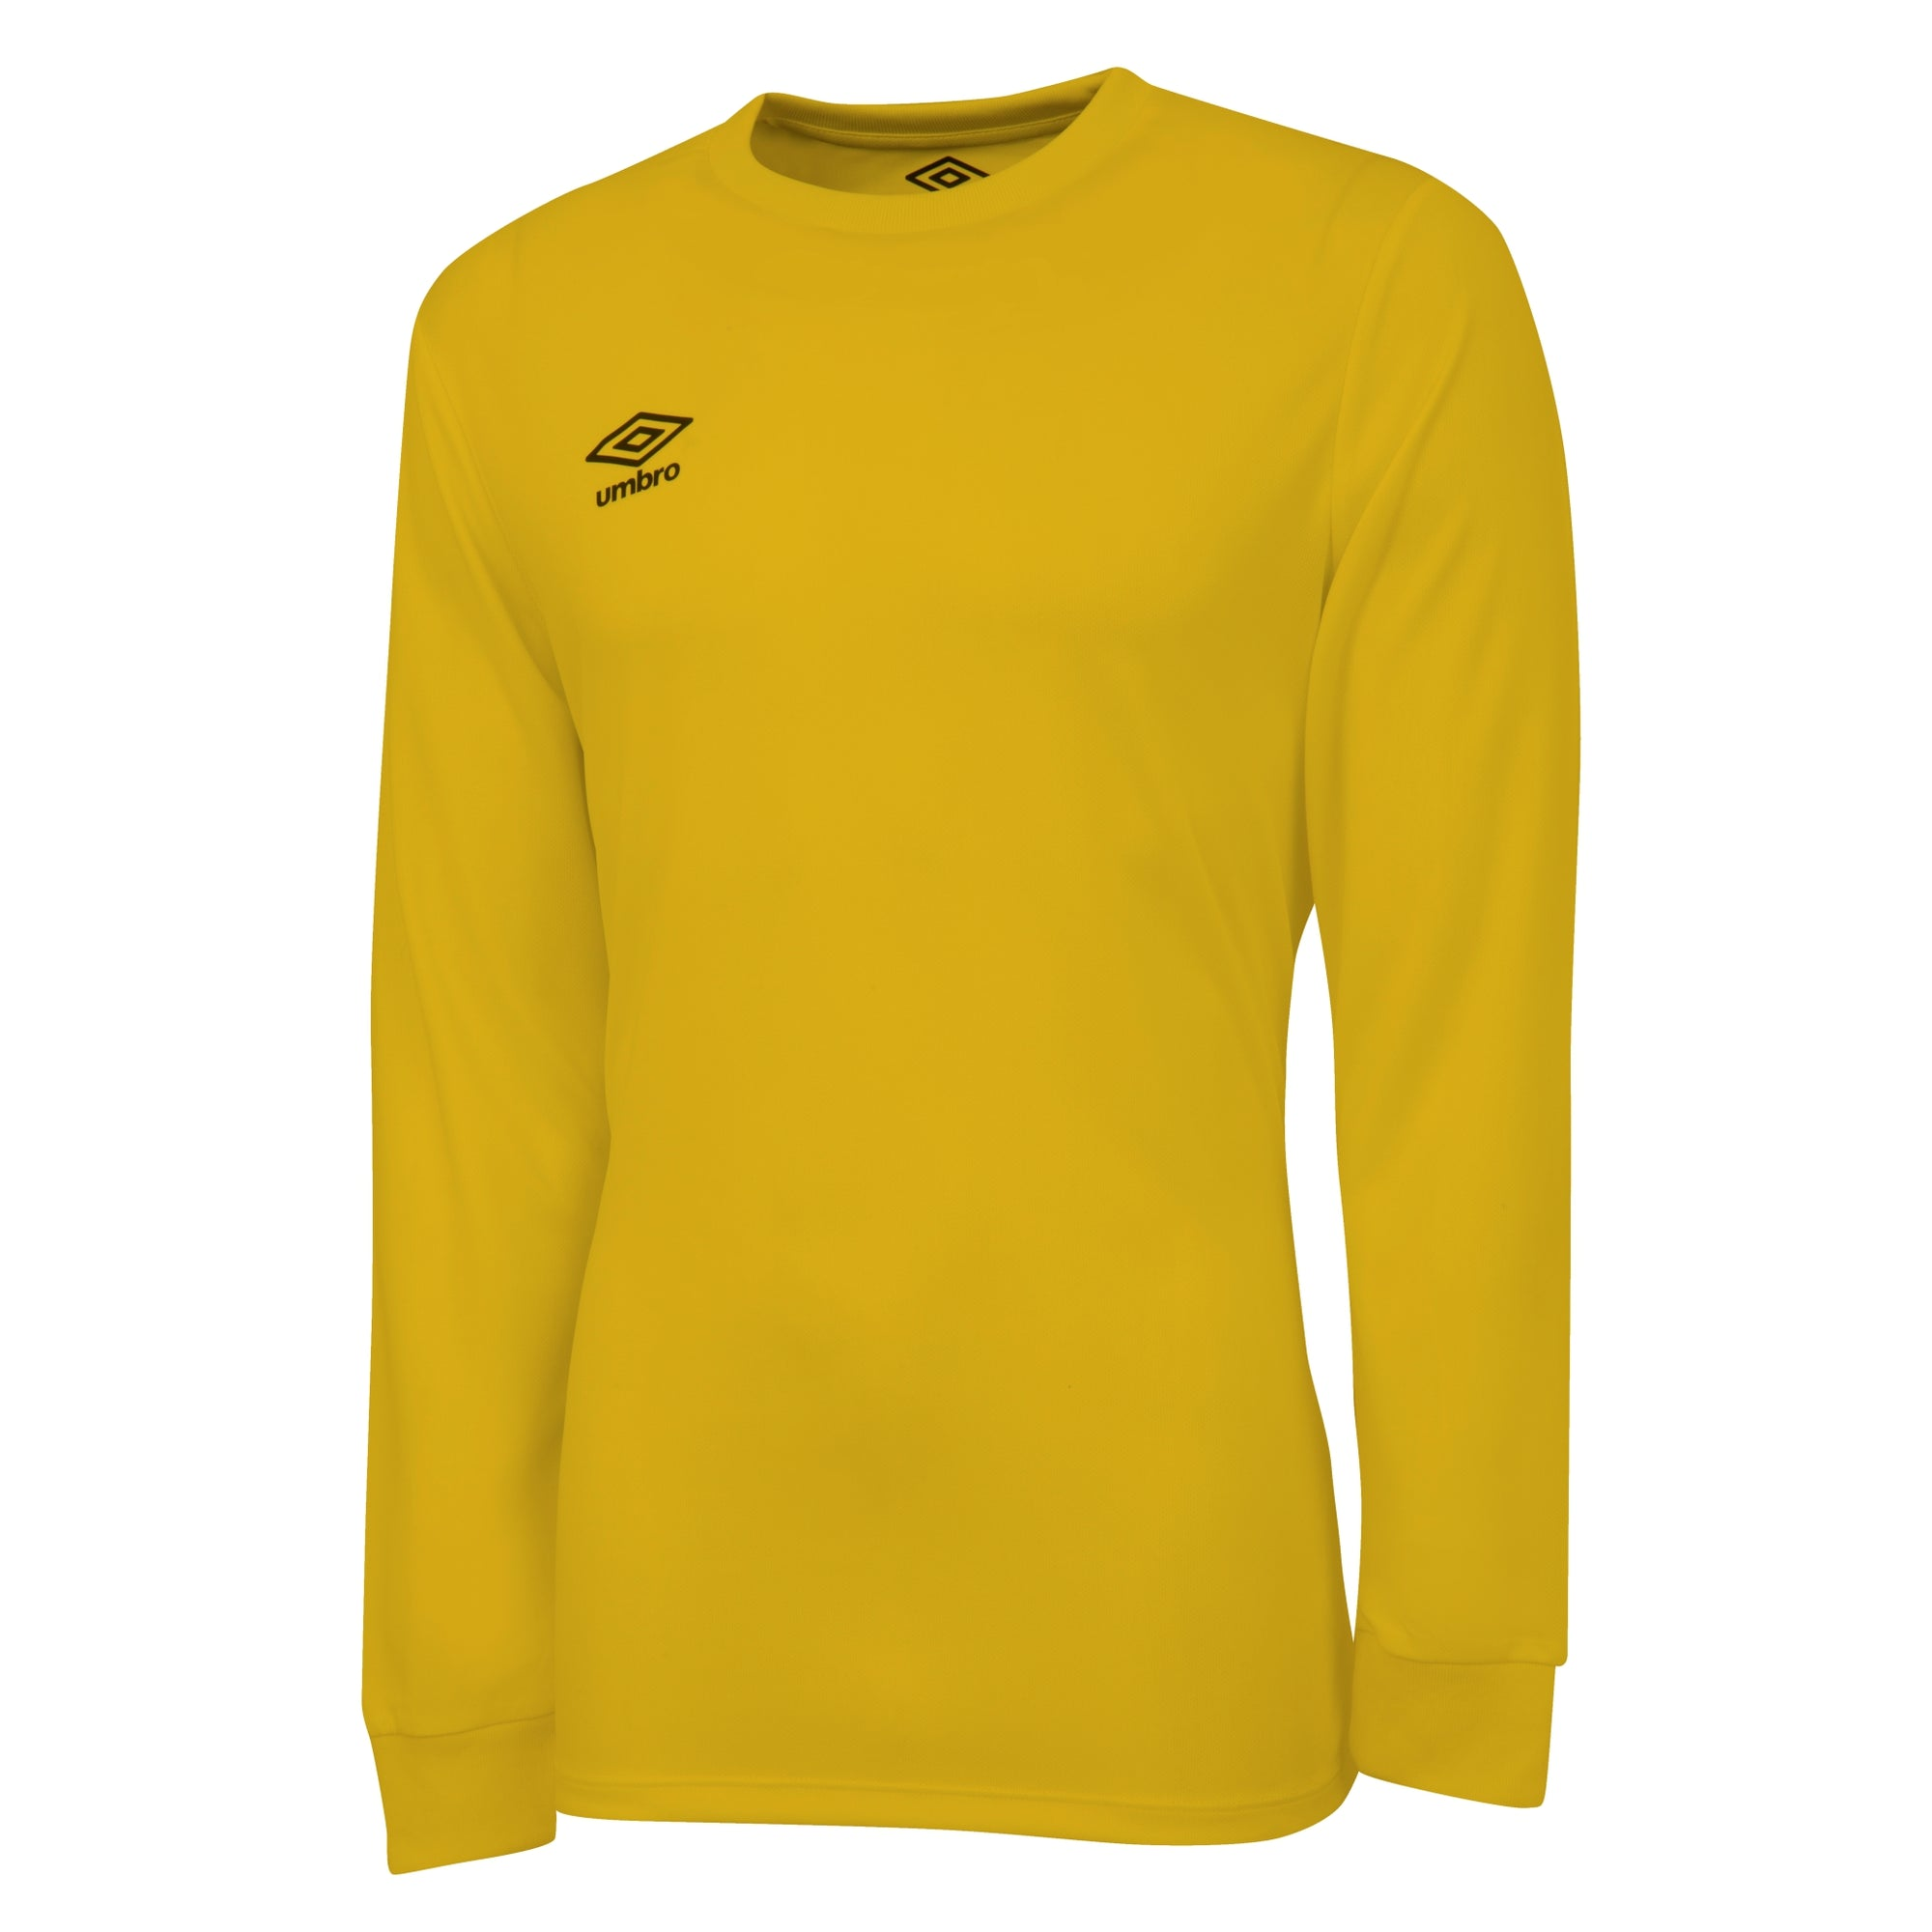 Umbro long sleeve club jersey in yellow with black printed Umbro logo